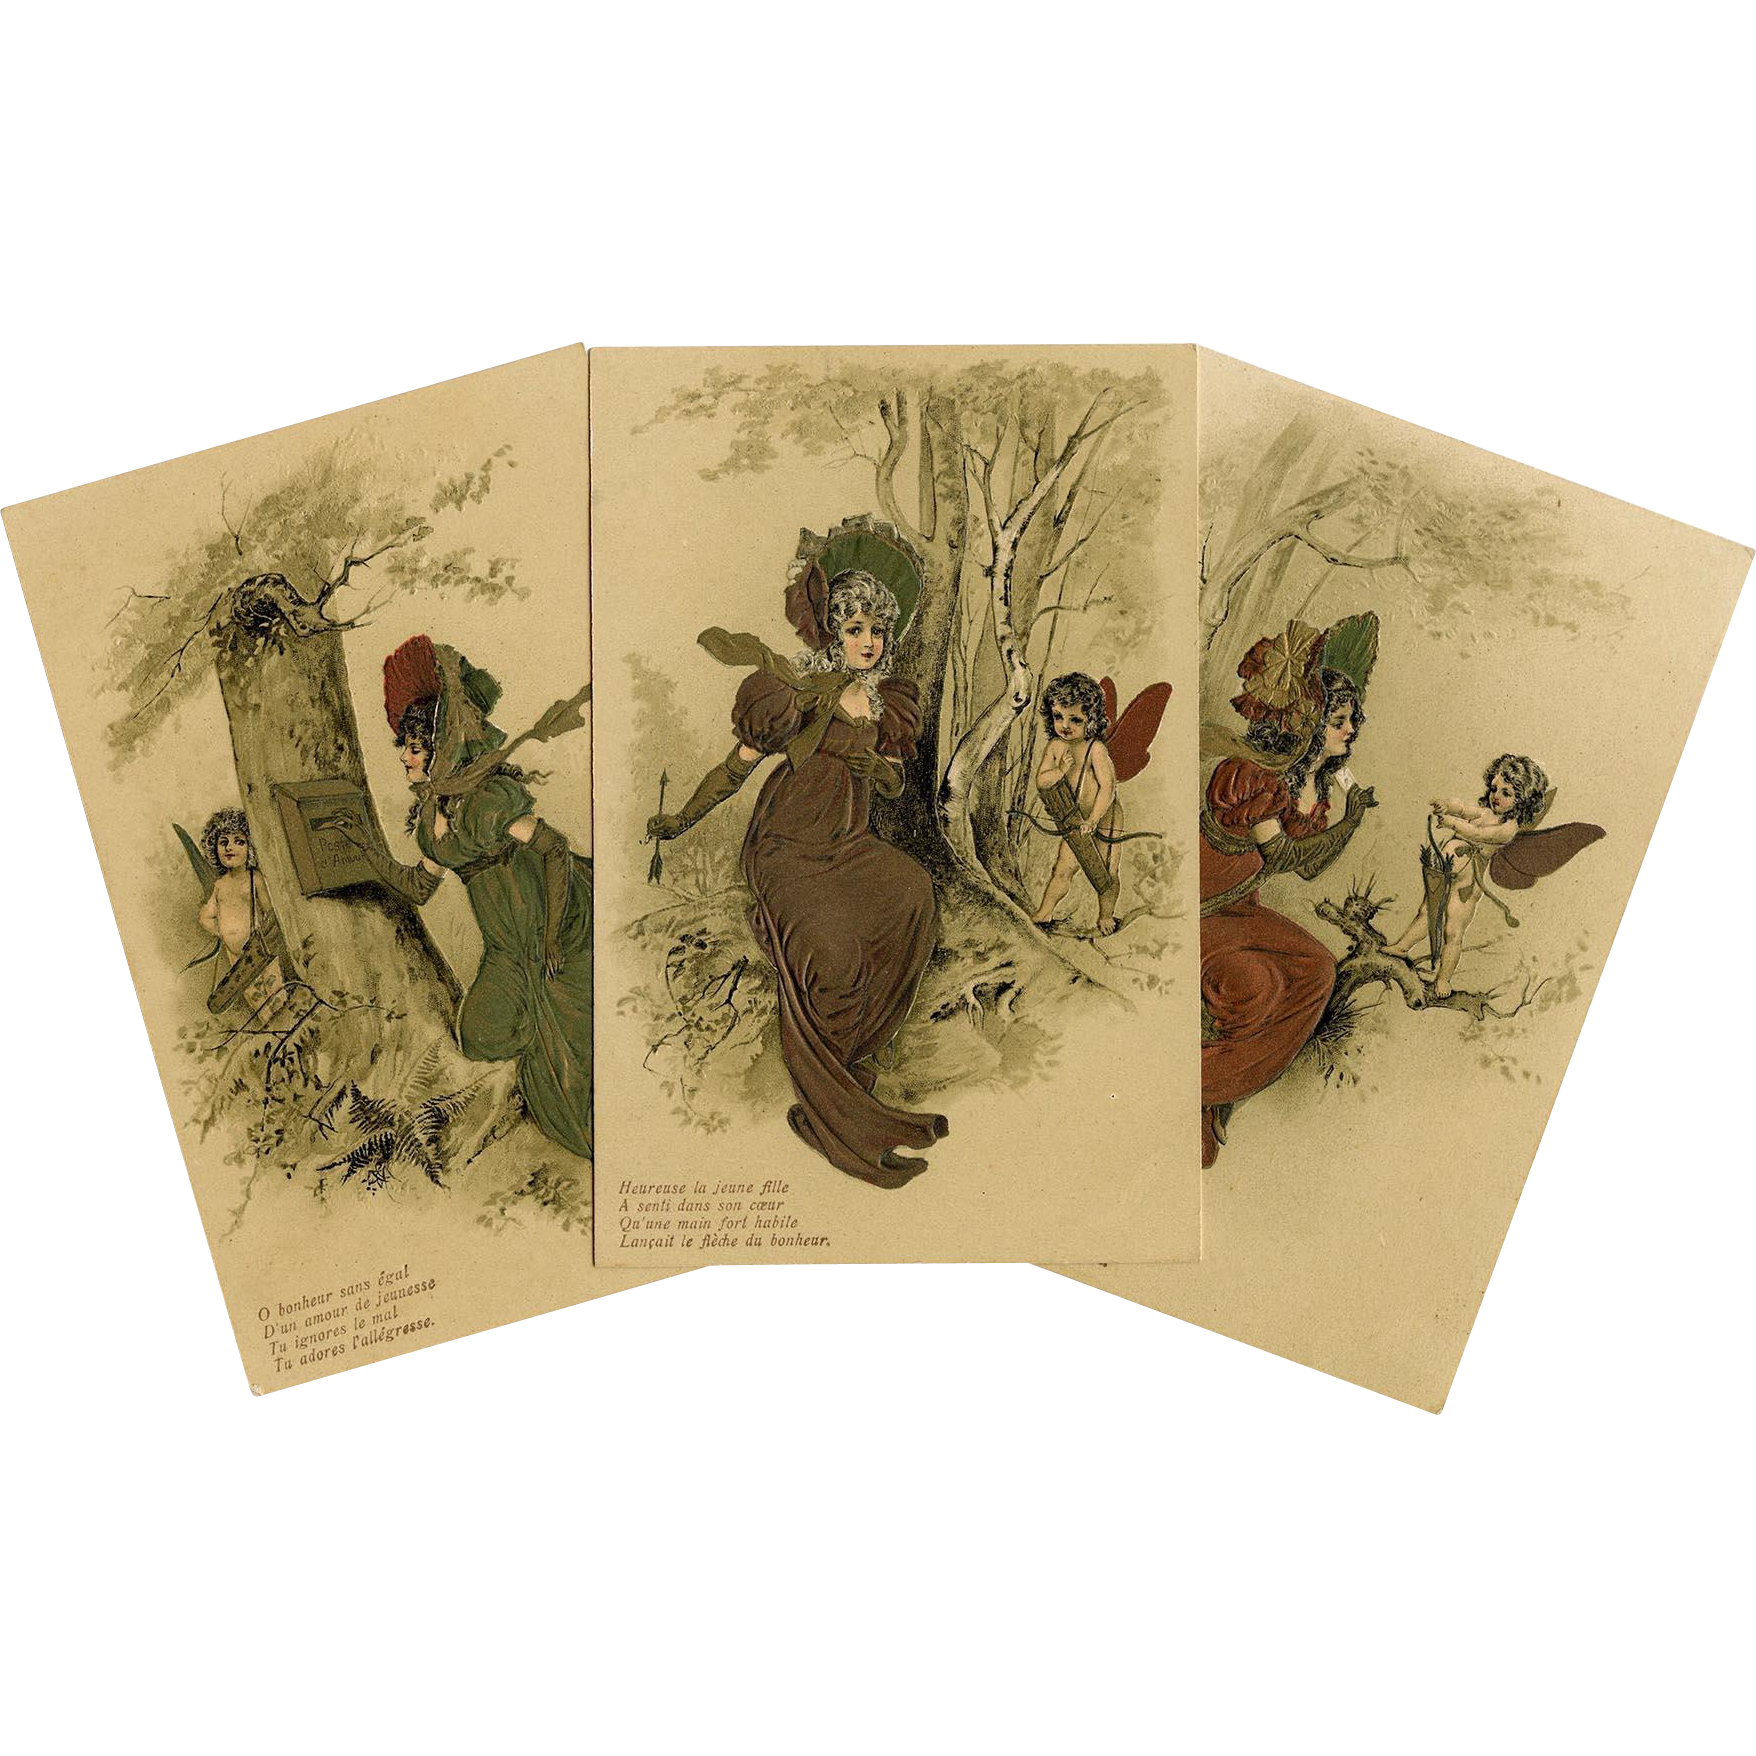 Cupid and Lady with Love Letter Series Three Unused Antique French German Postcards Embossed with Metallic Paints